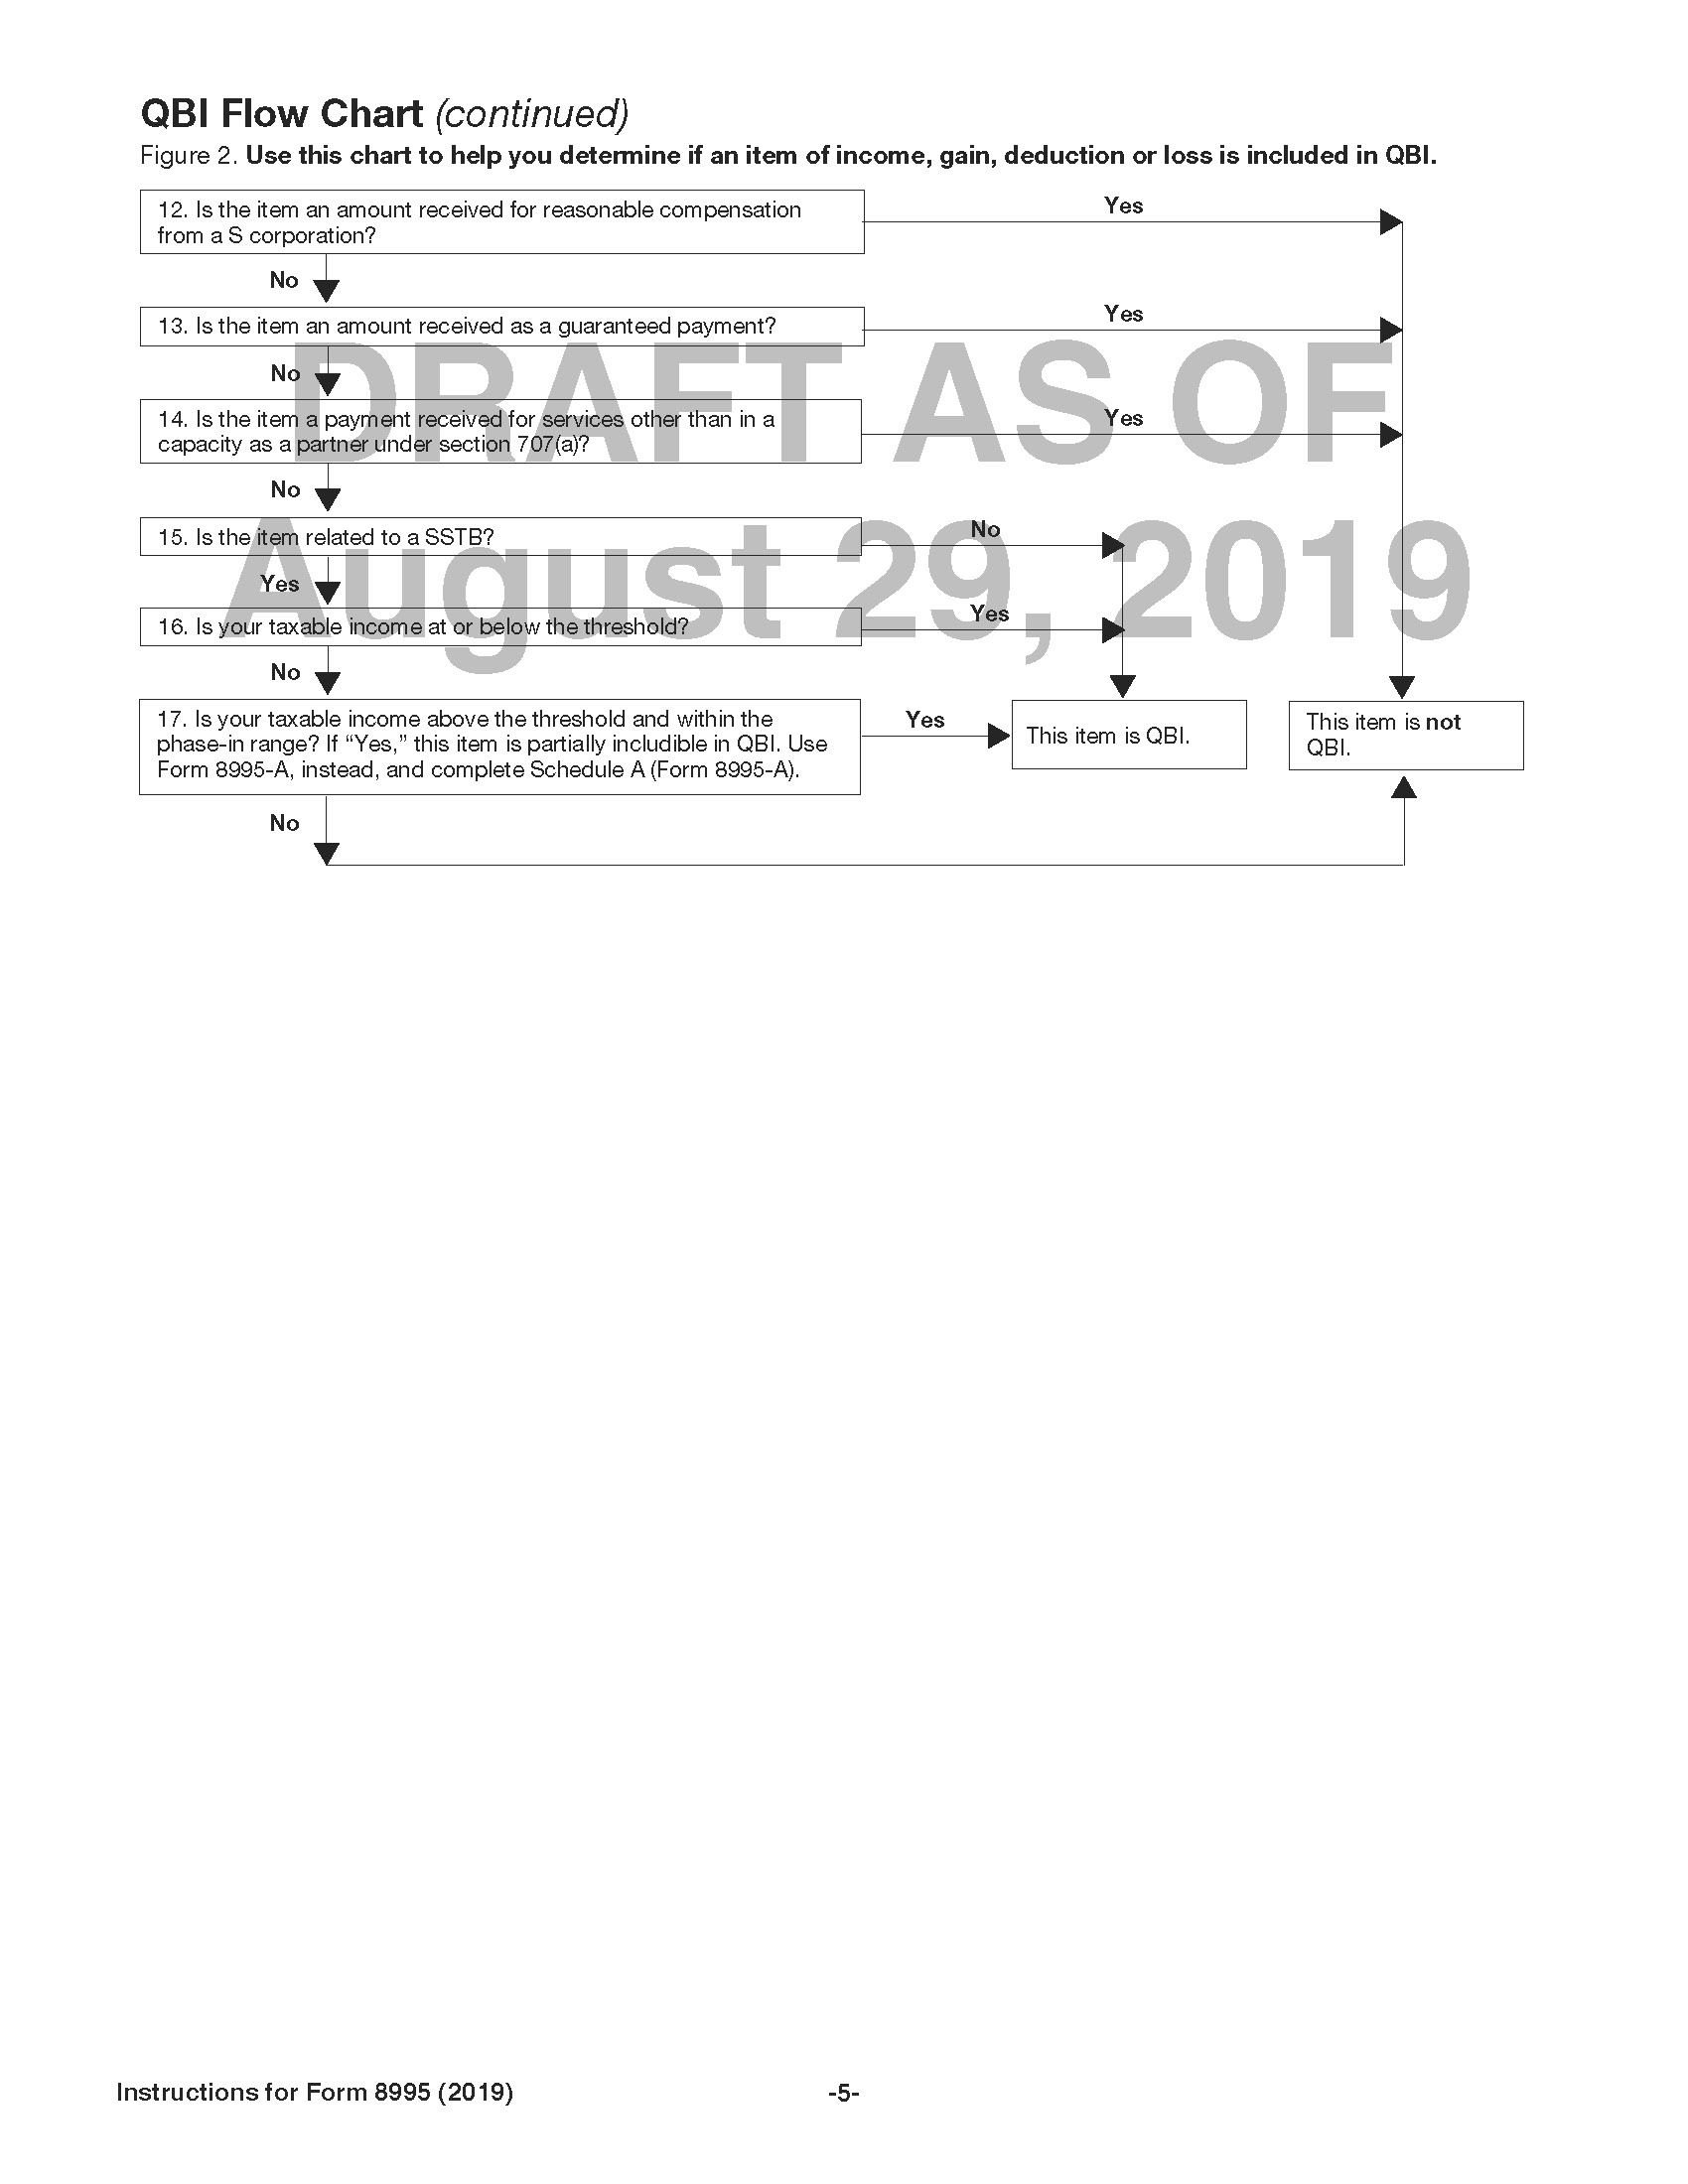 Draft Instructions to 2019 Form 8995 Contain More Informal